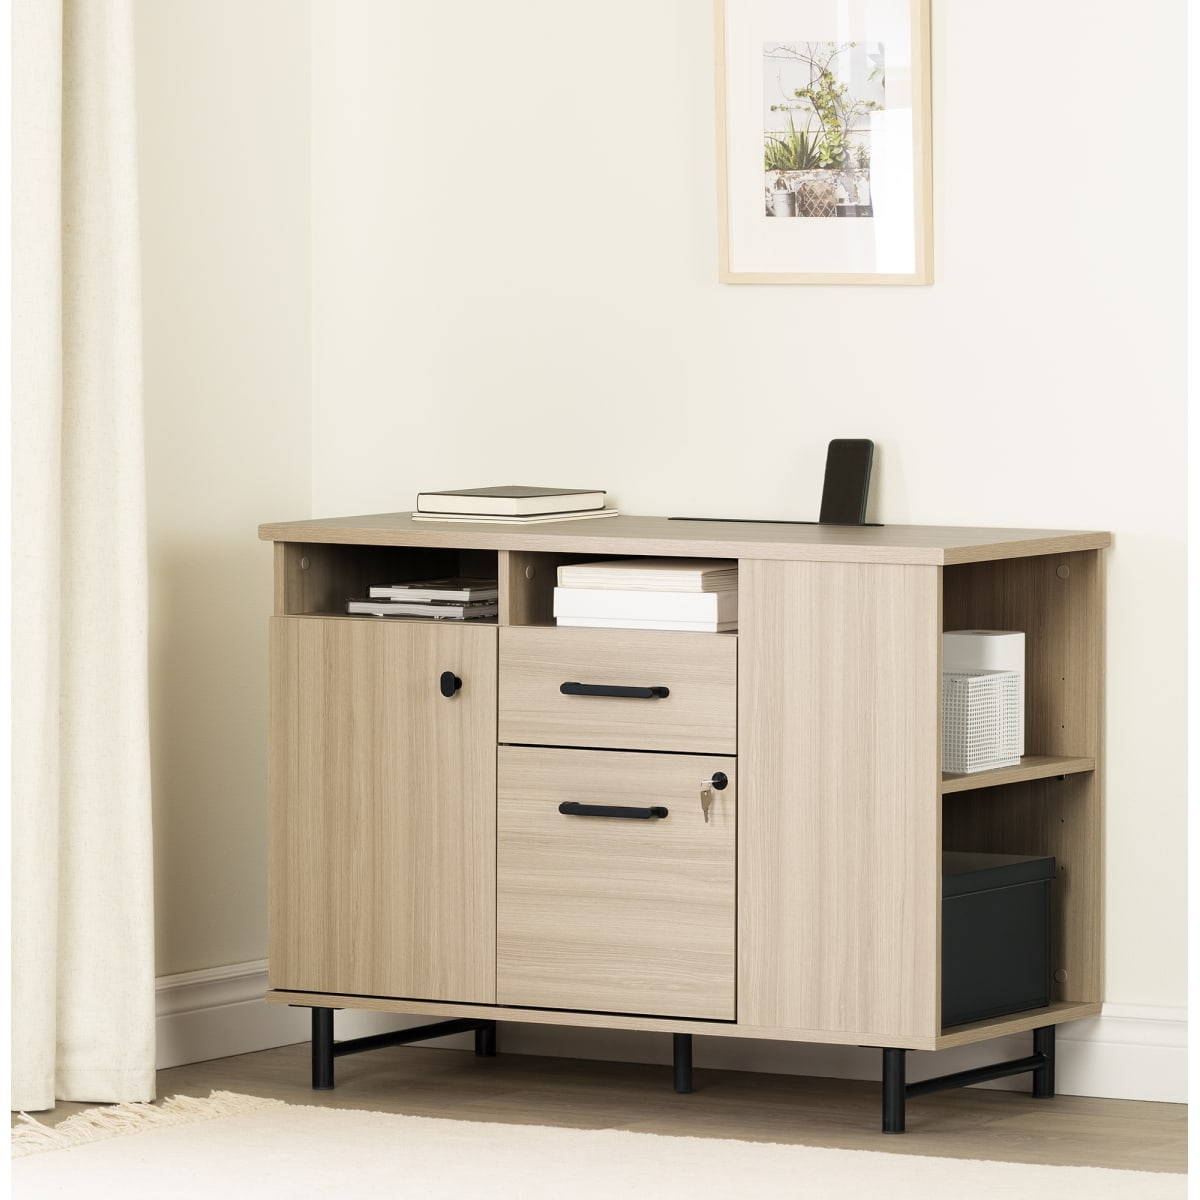 Zelia 2 Drawer Credenza With Open And Closed Storage Storage Unit Professional Office Furniture Products South Shore Furniture Us Furniture For Sale Designed And Manufactured In North America